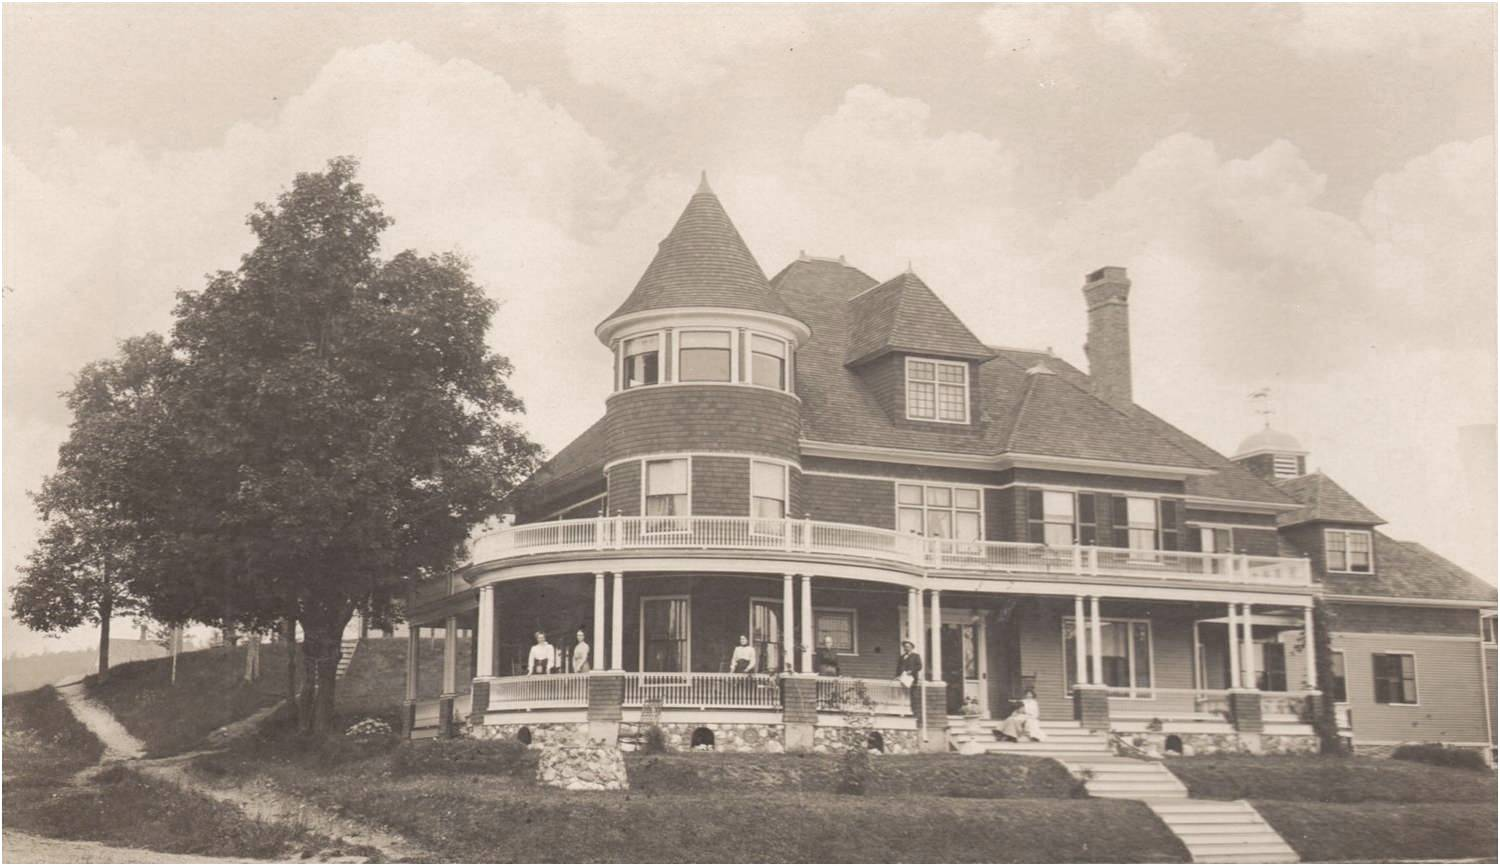 Normal   0                       false   false   false     EN-US   X-NONE   X-NONE                                                                                 If we all had porches like this, there'd be no need for a house. Rand House, Canaan Village. Courtesy Canaan Historical Society.